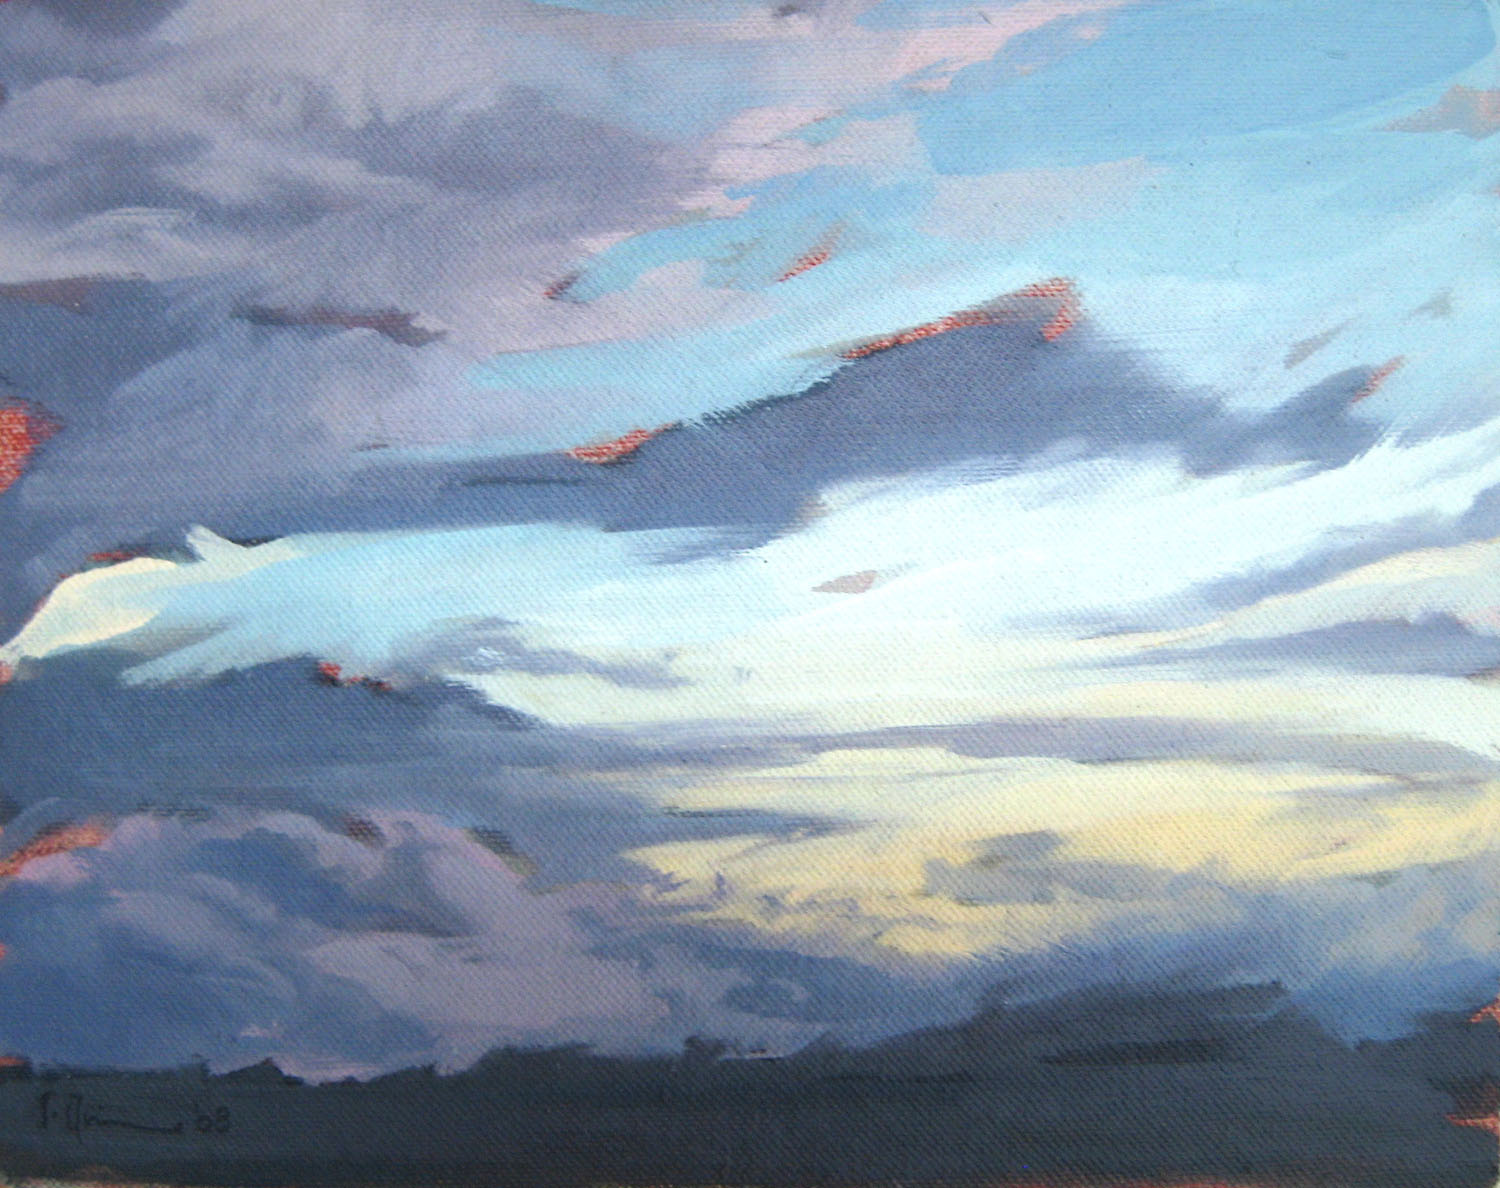 Tracey Quinn_2011_Study Dusk Audleystown_oil on canvas_20 x 25cm.jpg